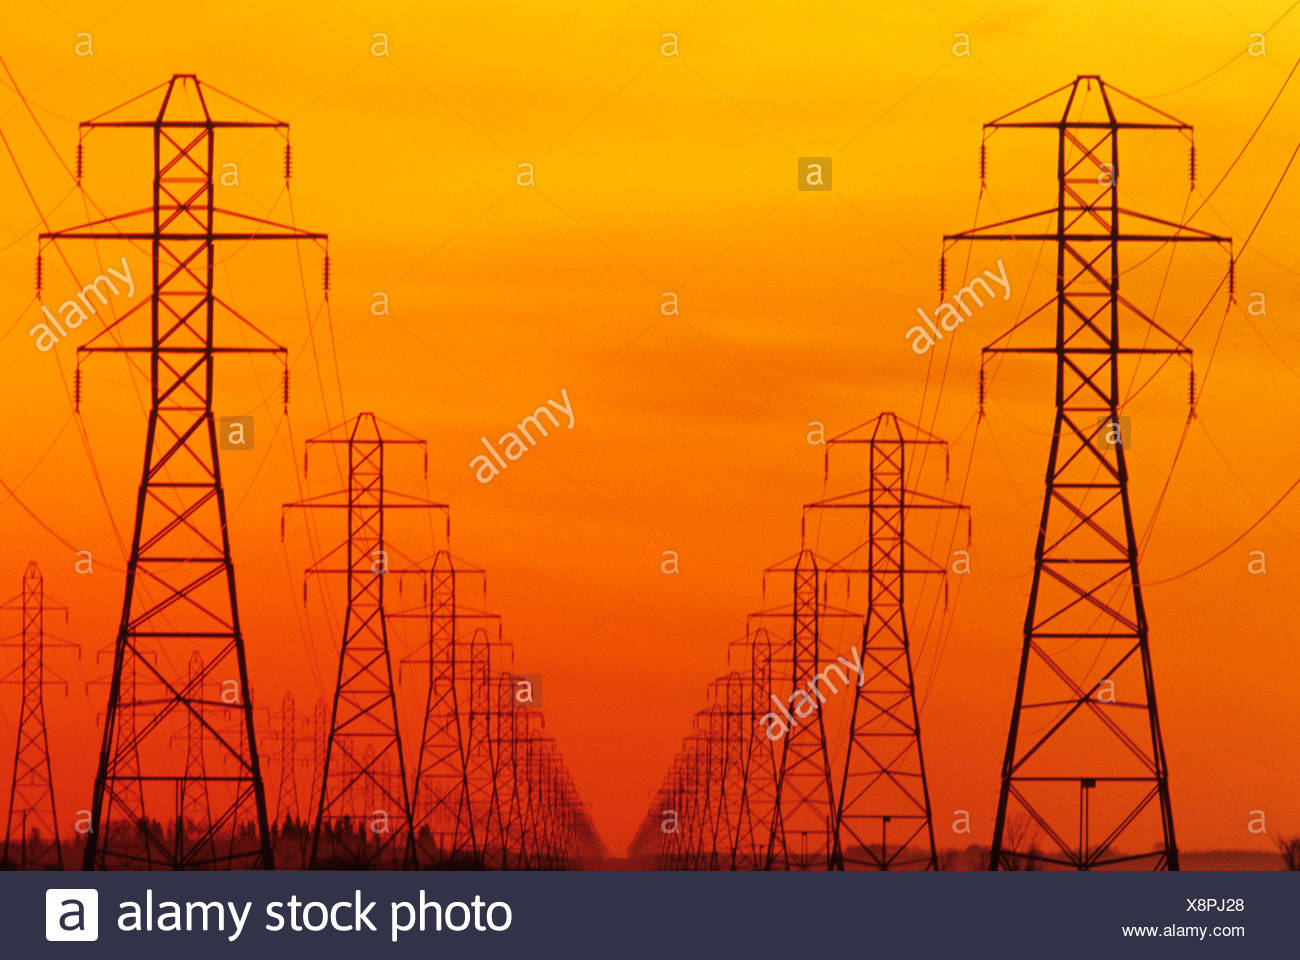 hydro electric towers at sunset, Manitoba, Canada. - Stock Image